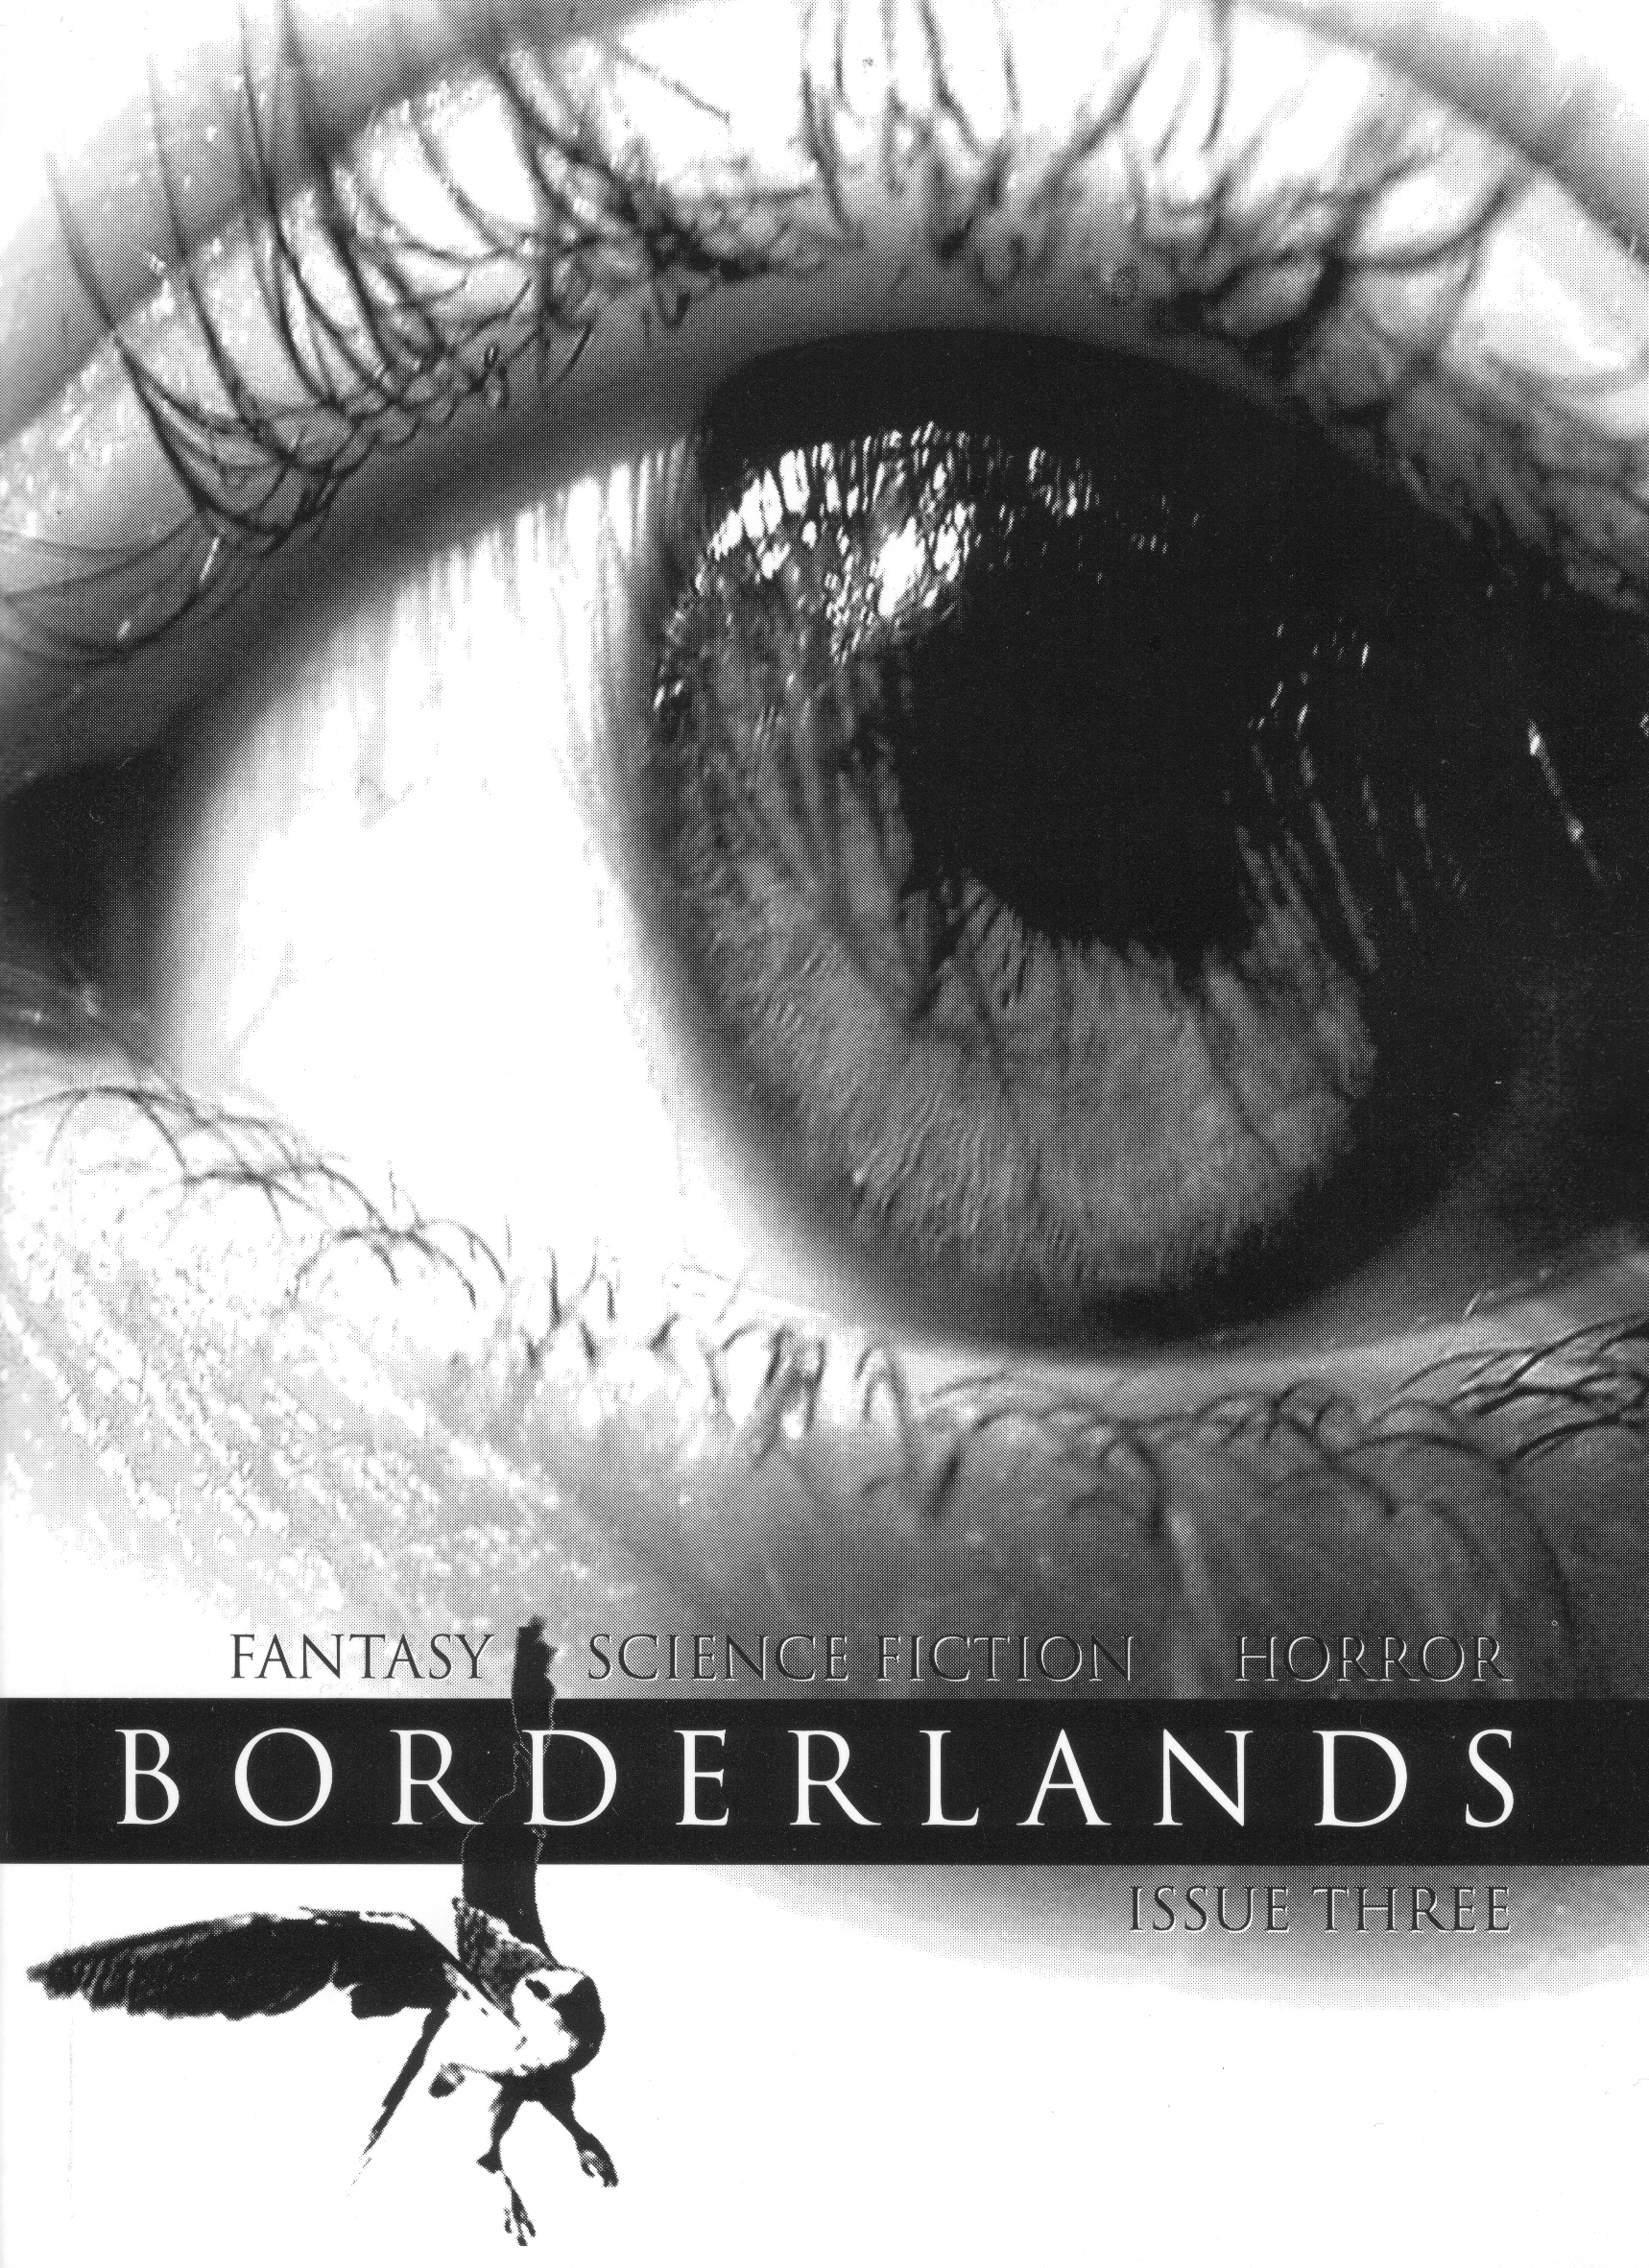 borderlands 3 cover